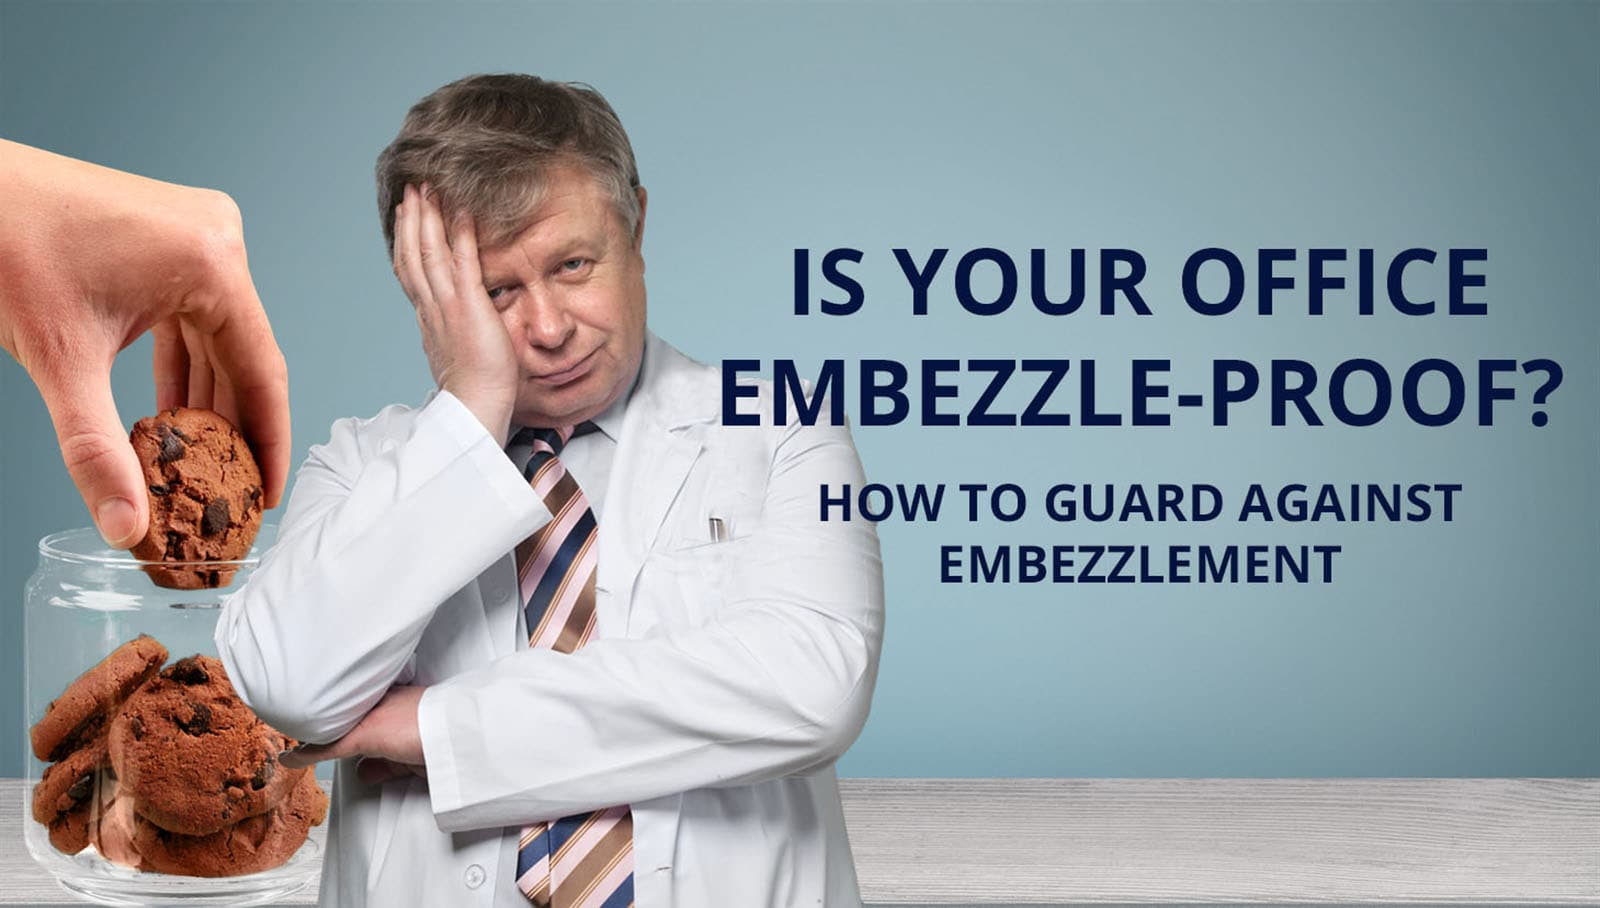 IS YOUR OFFICE EMBEZZLE-PROOF? HOW TO GUARD AGAINST EMBEZZLEMENT